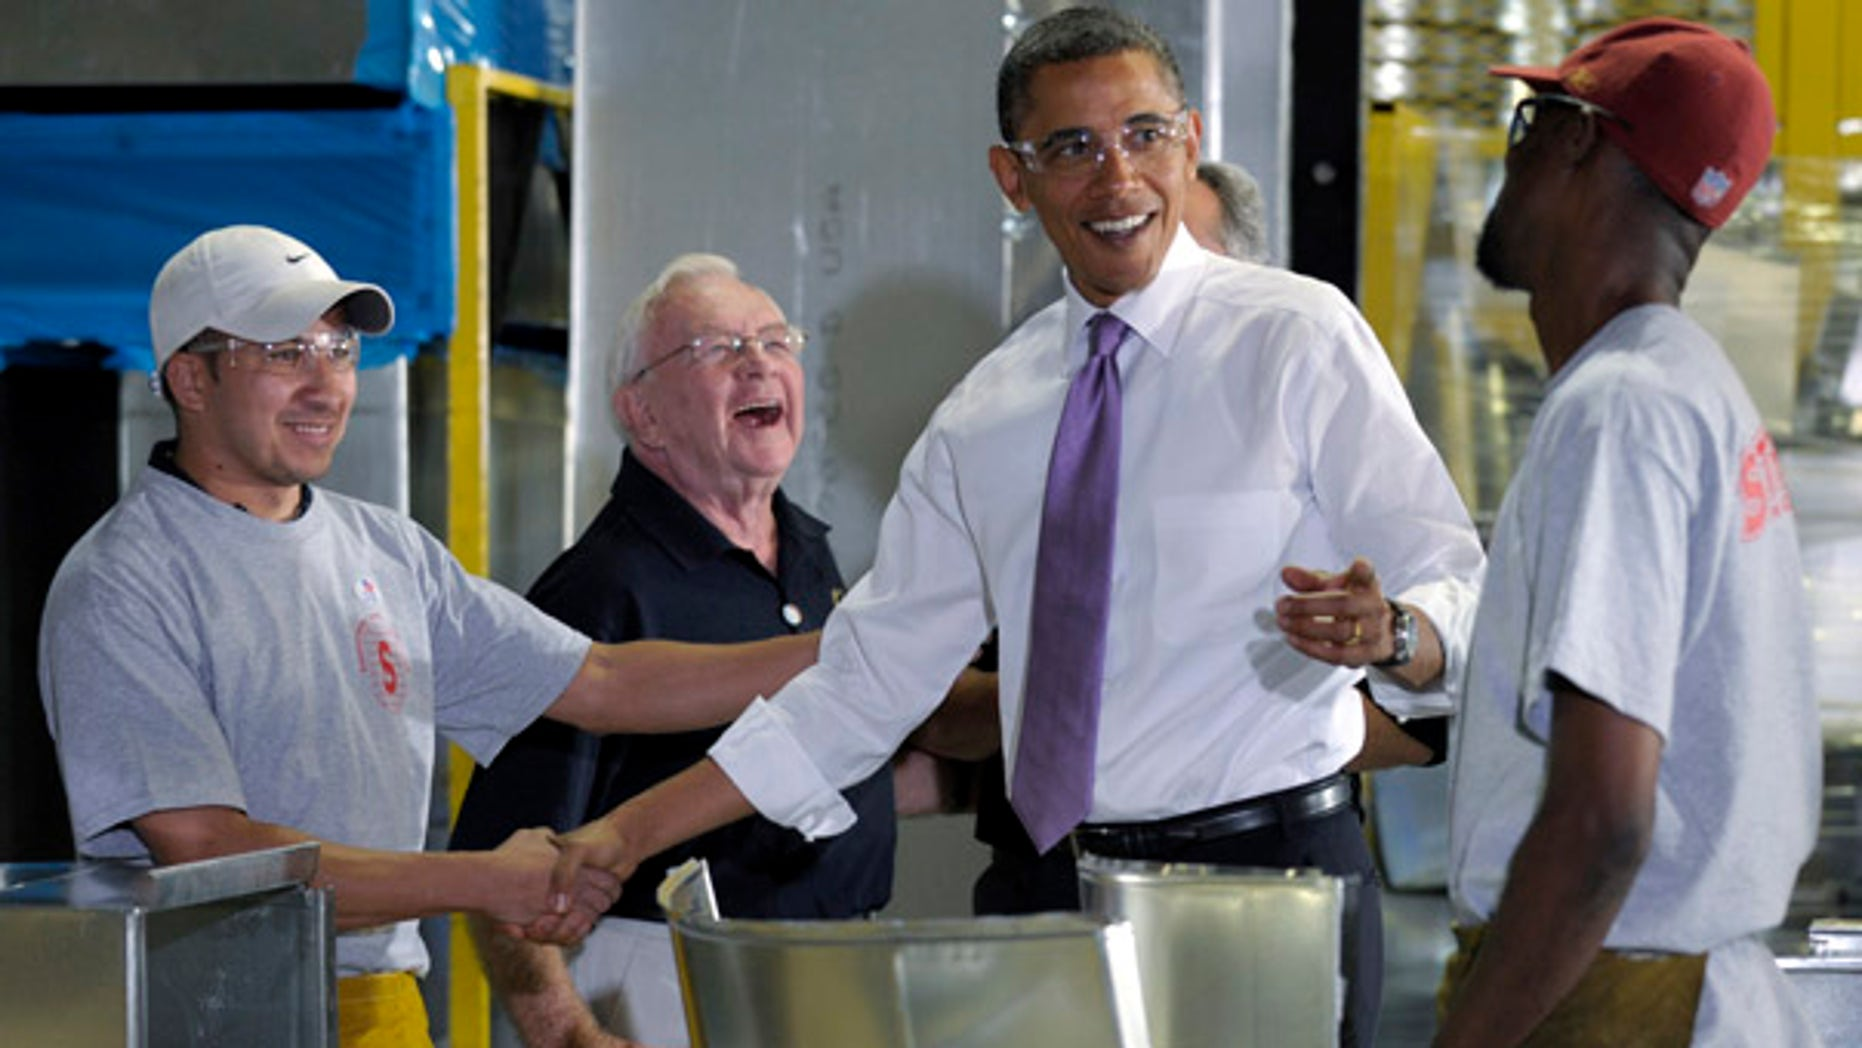 President Barack Obama shares a laugh with Stromberg Metal Works employees during a tour of the company in Beltsville, Md., Friday, Oct. 29, 2010, before speaking about the economy. Robert Gawne, Stromberg Metal Works CEO, laughs, second from left. (AP Photo/Susan Walsh)